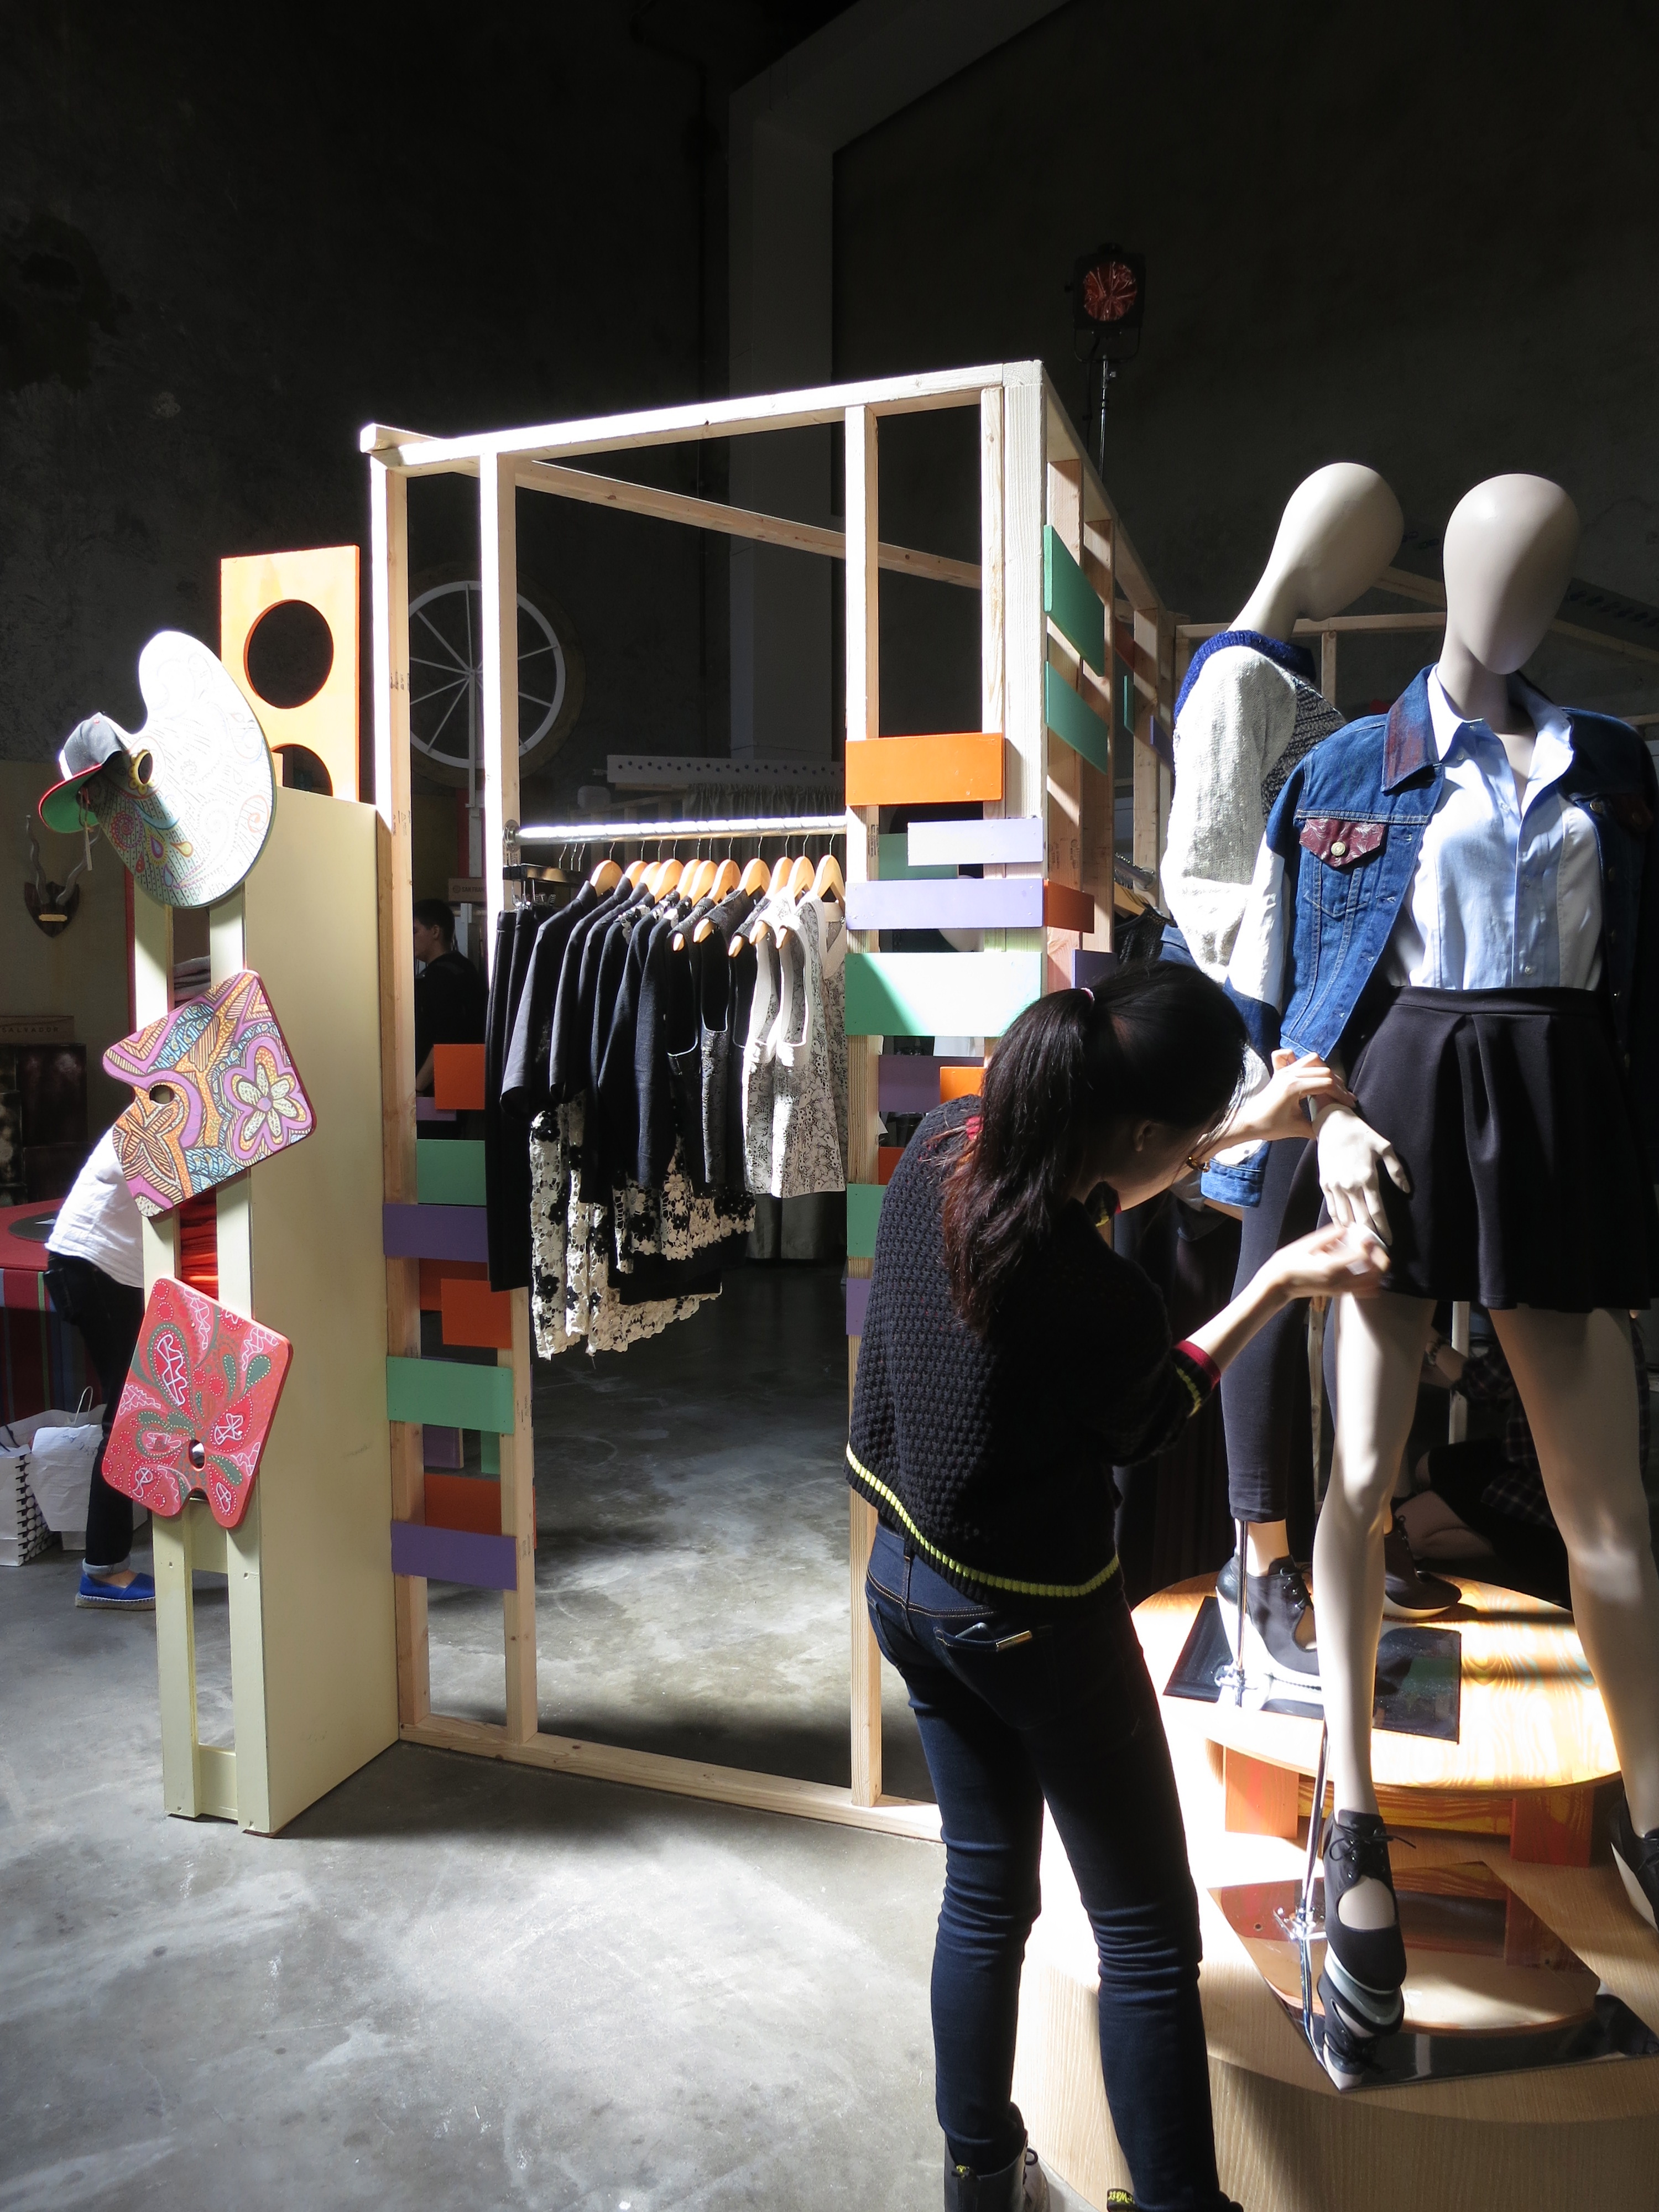 A Fashion Merchandising student puts the final touches on a display before the opening. Photo by Martin Zanfardino